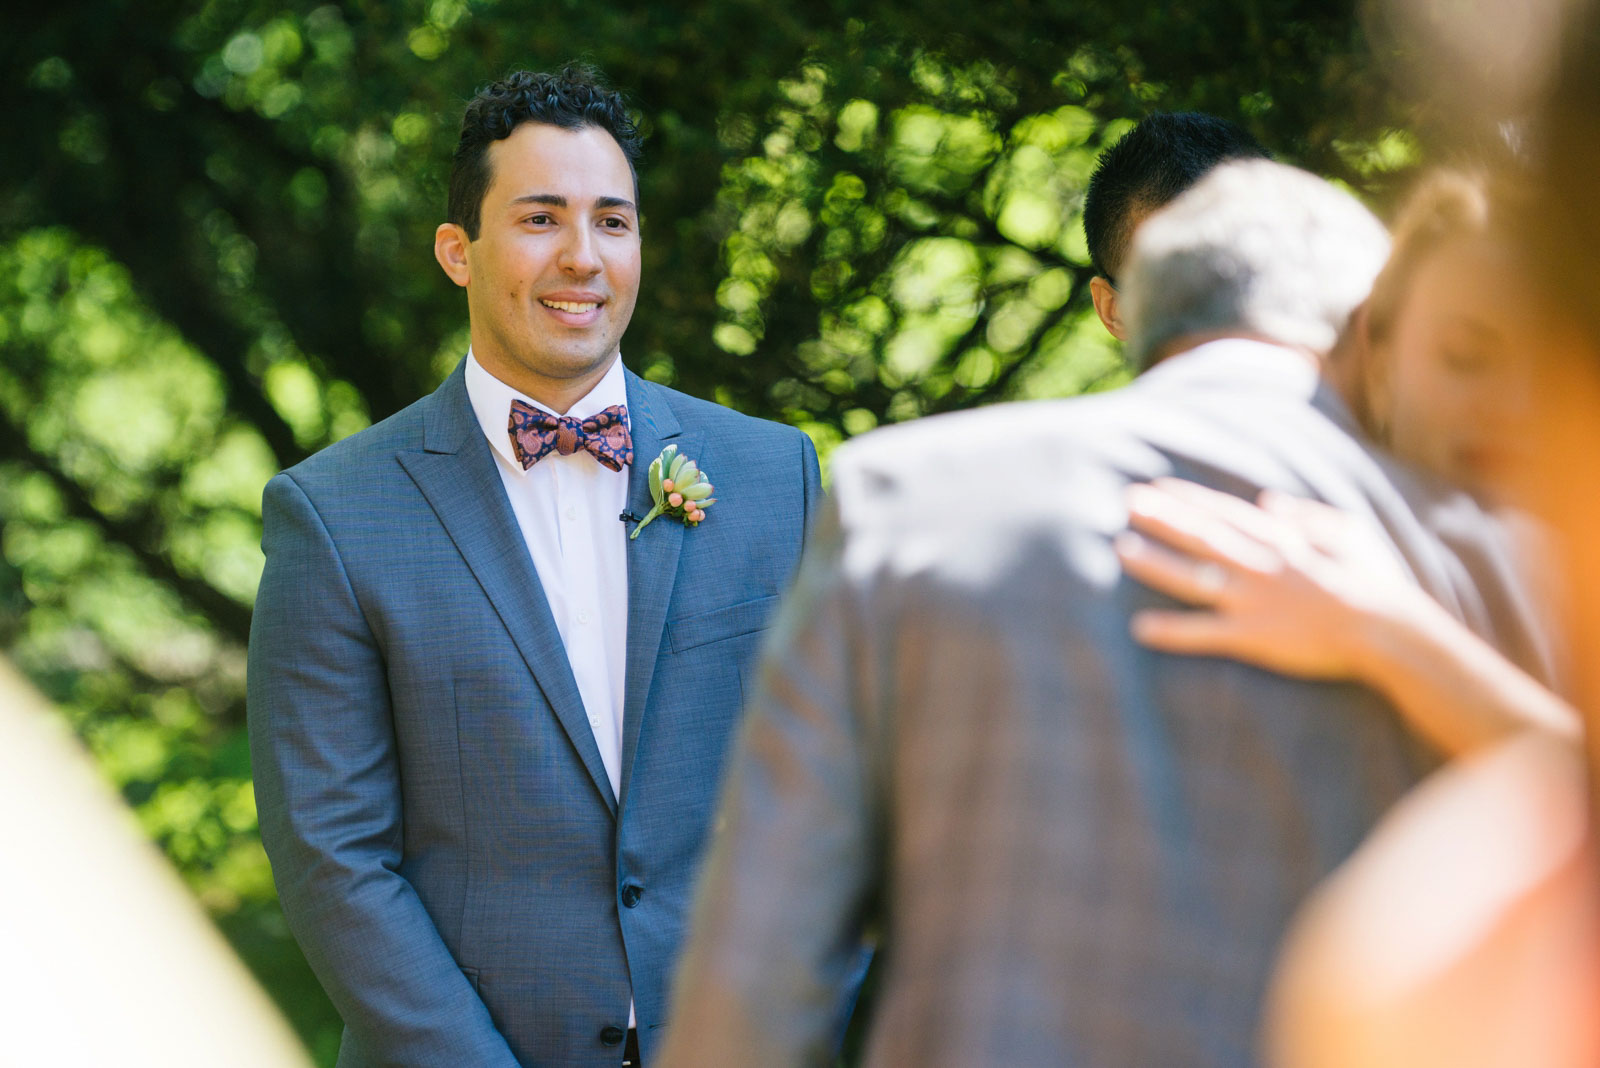 groom about to cry during wedding ceremony as father of the bride gives bride away